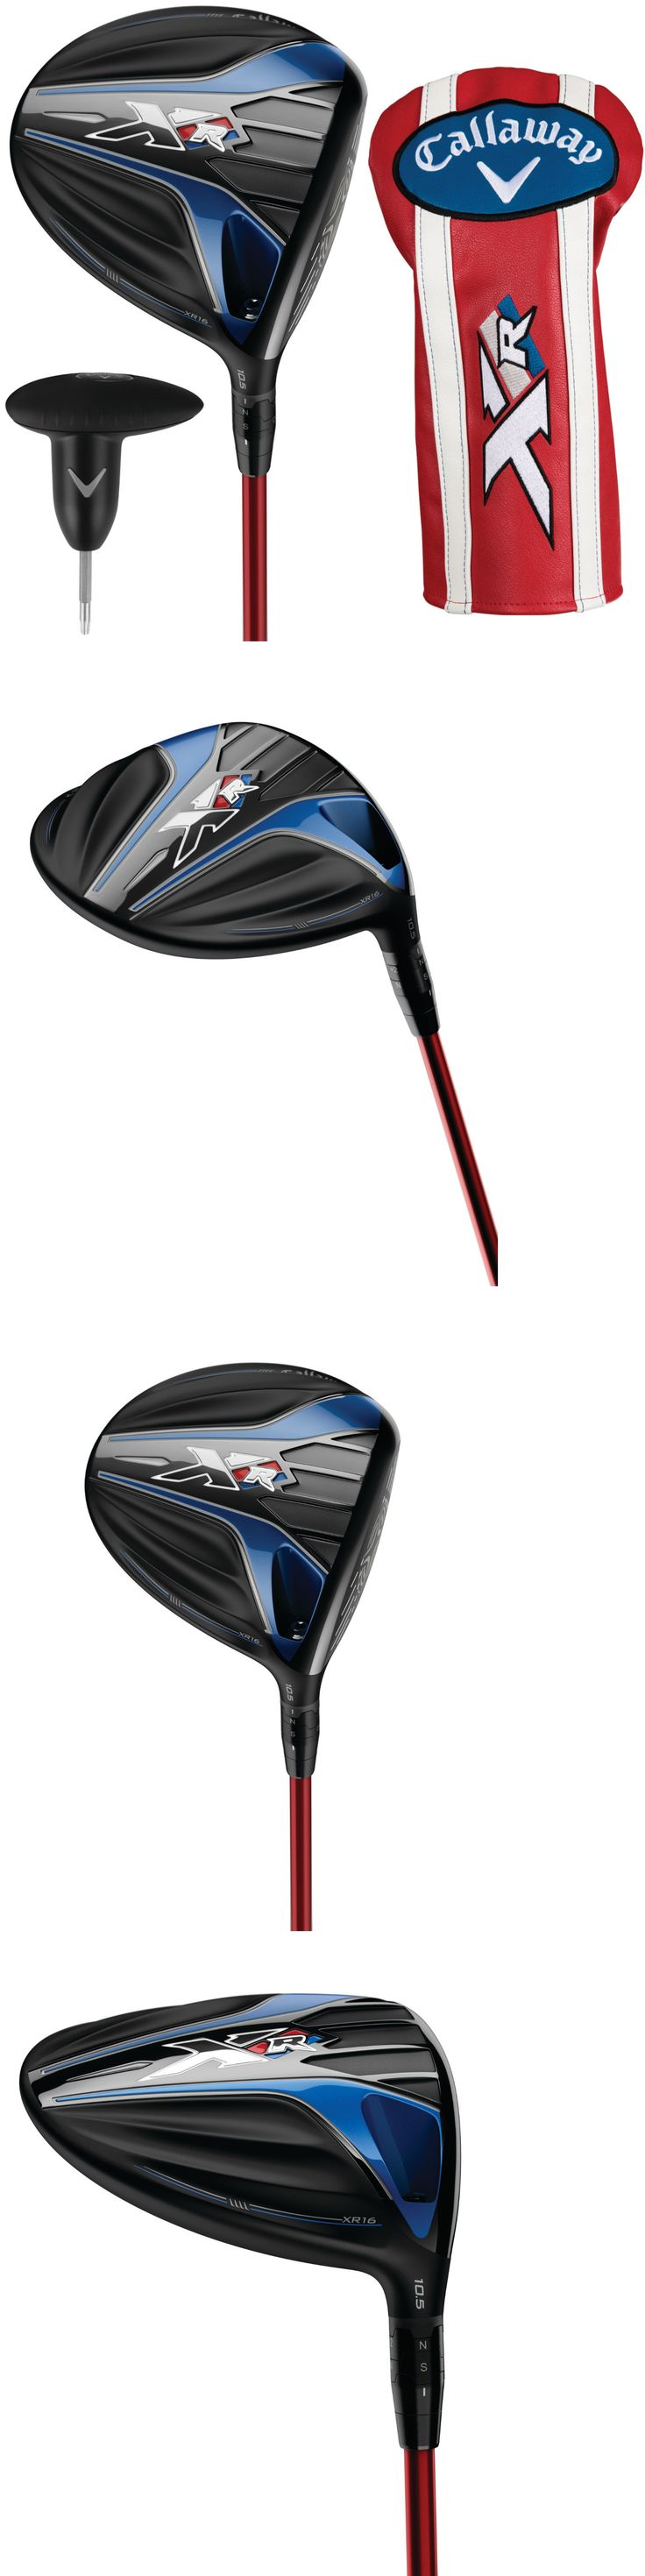 Golf Clubs 115280: New 2016 Callaway Xr 16 Driver - Pick Your Flex And Loft - Left Or Right Handed BUY IT NOW ONLY: $259.95